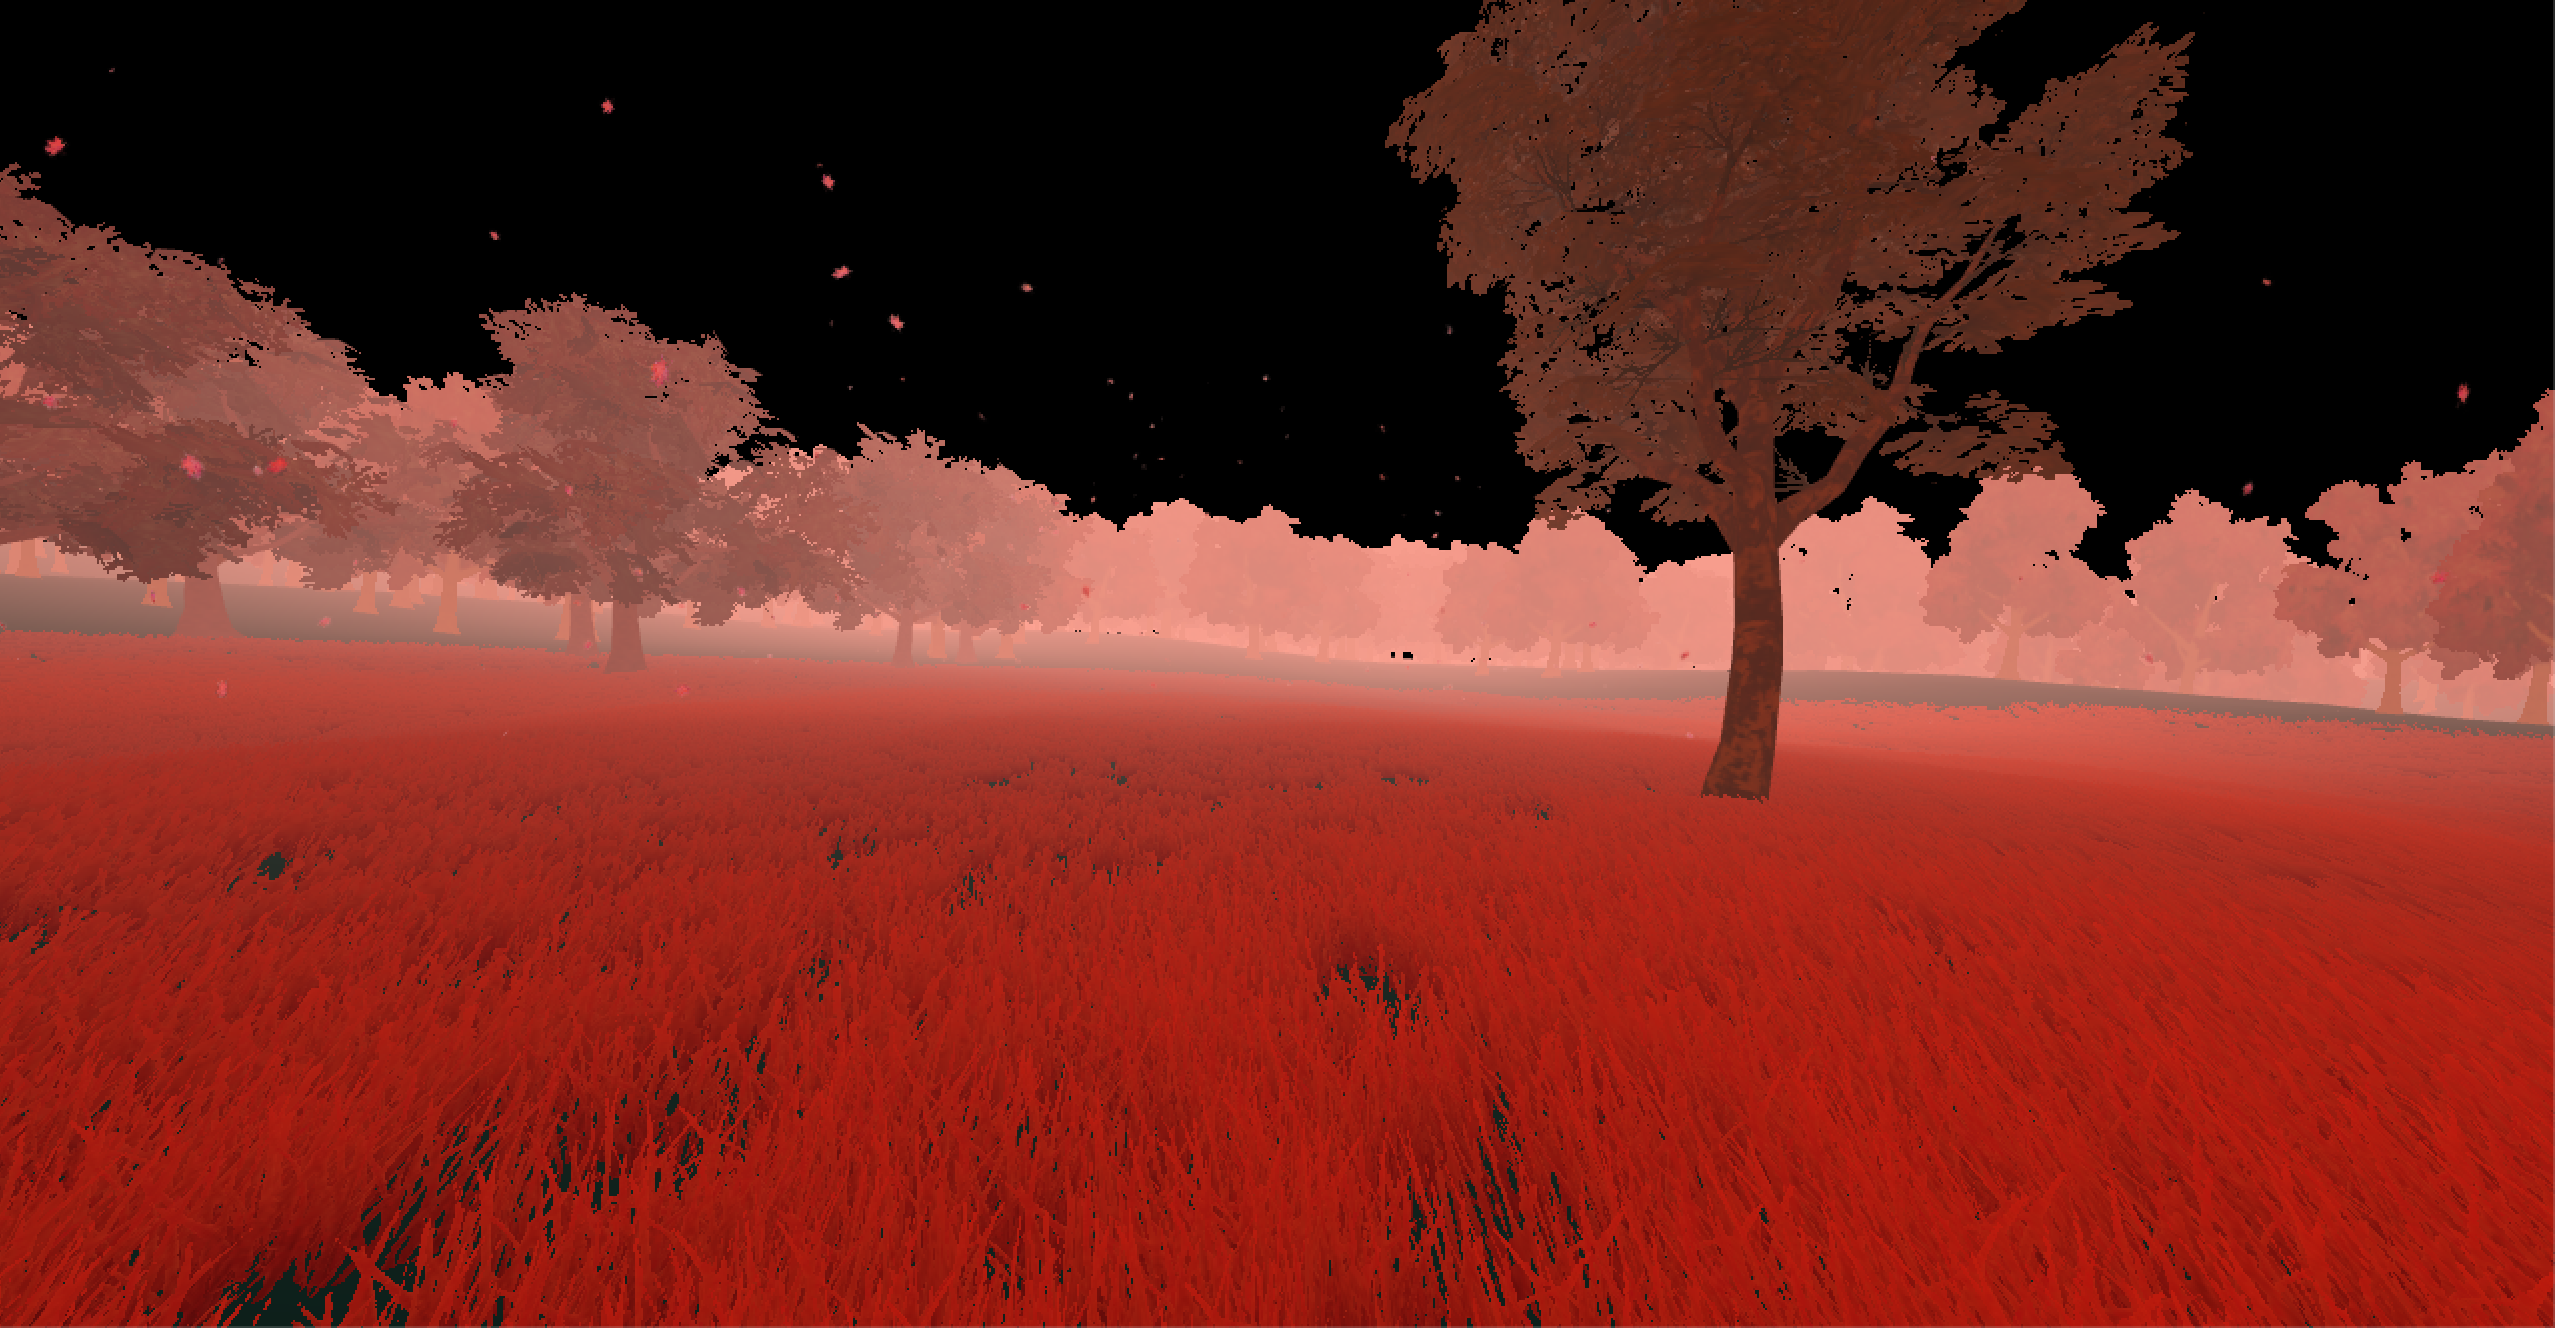 Exploring death through the isolation of VR